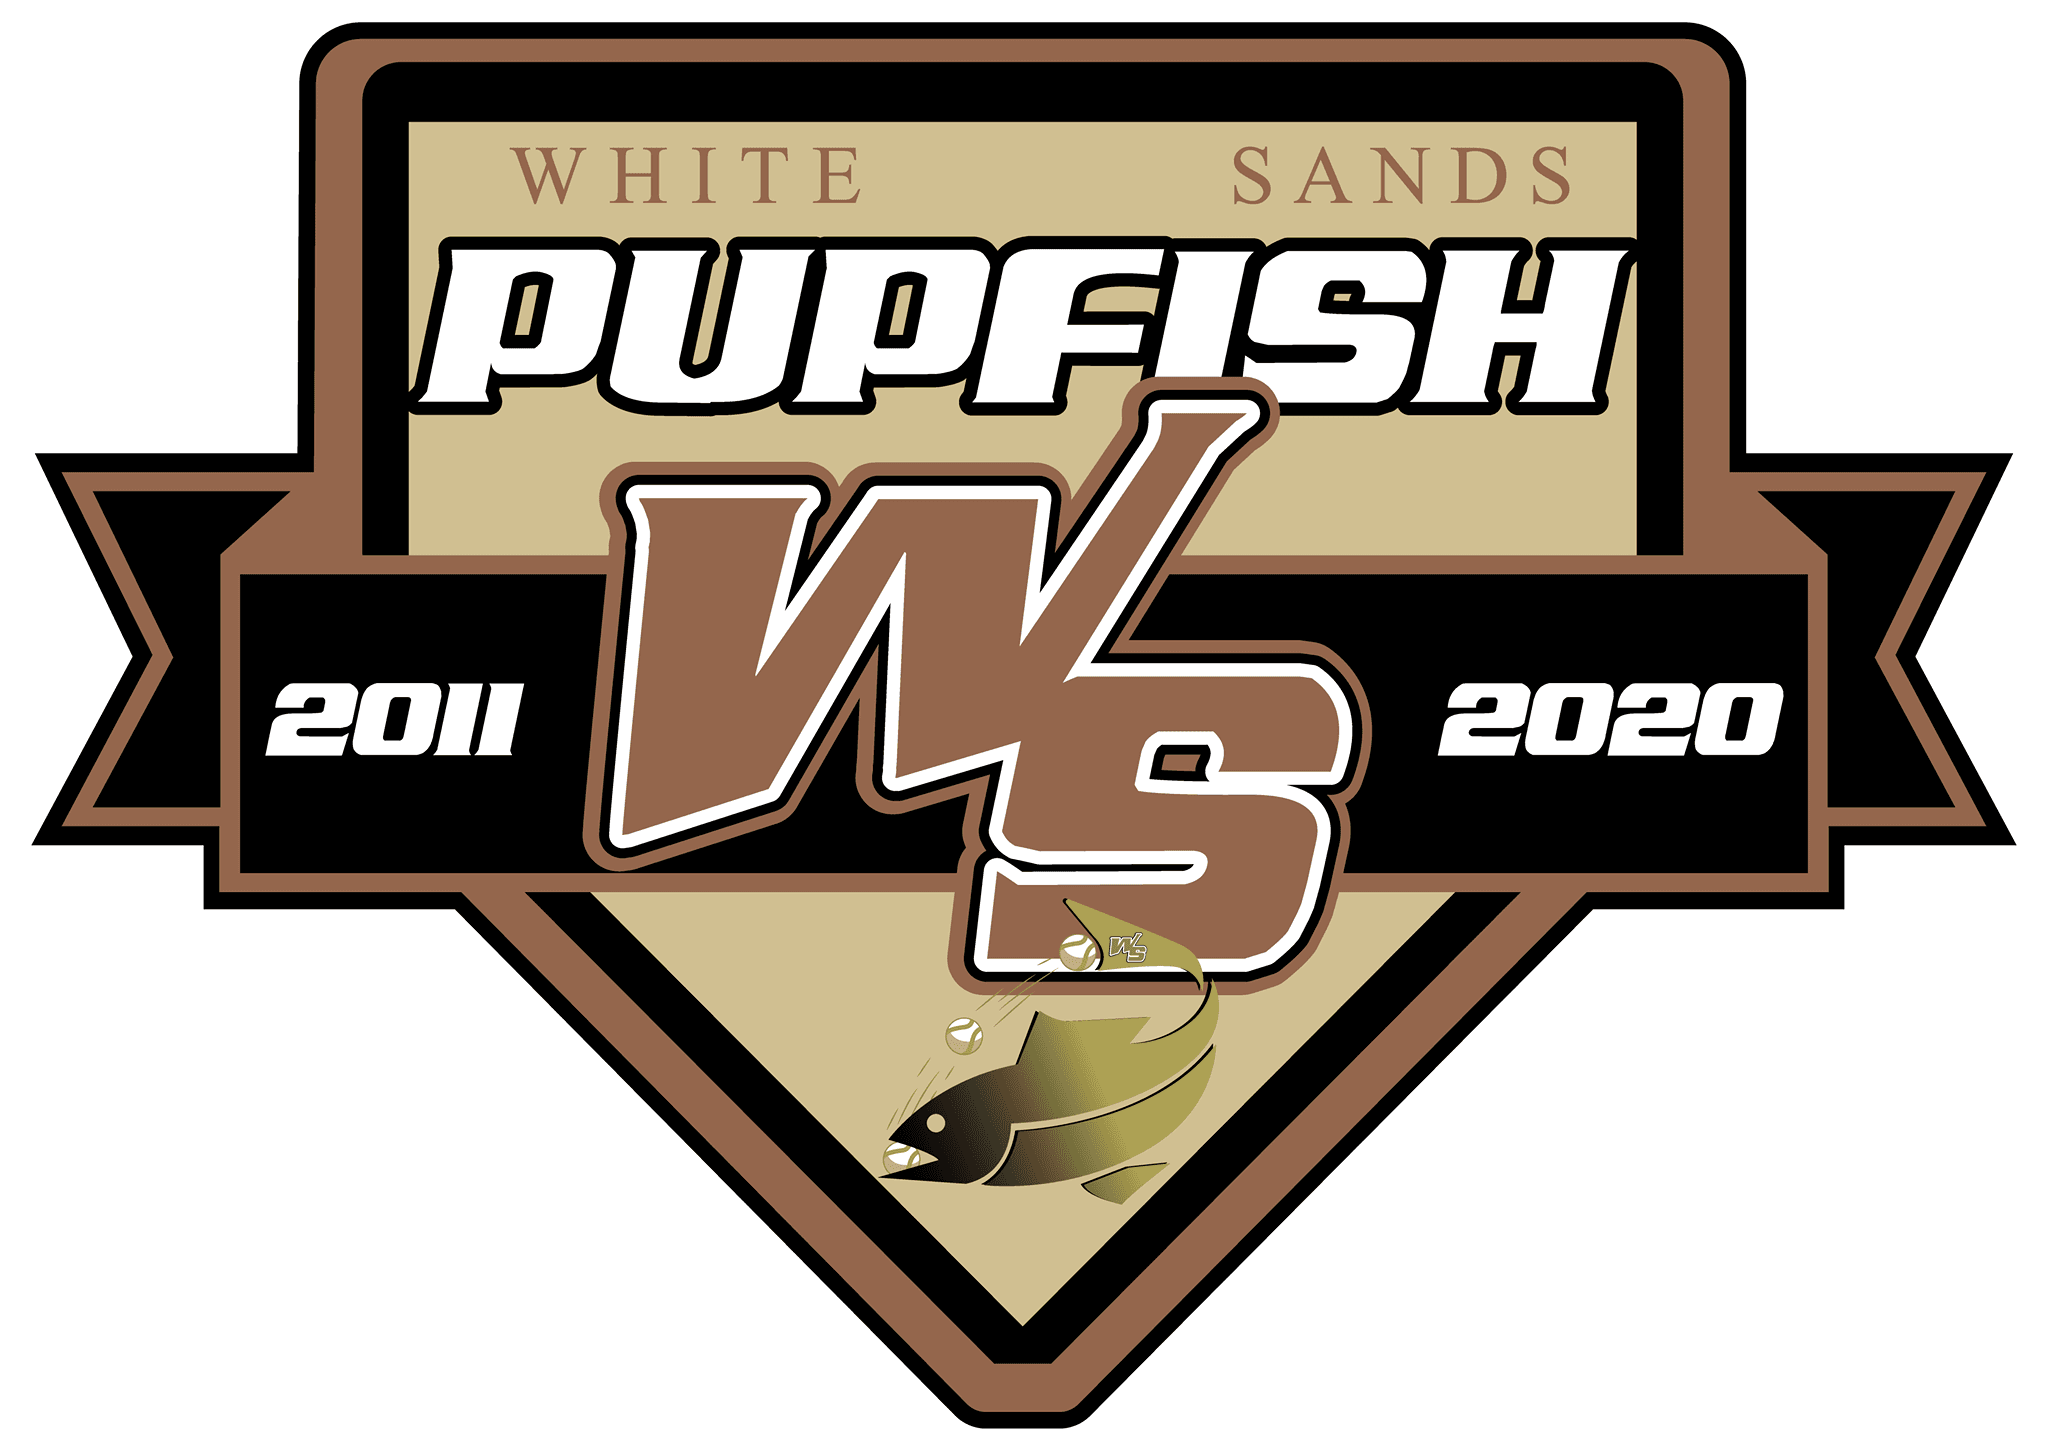 White Sands 2020 Logo